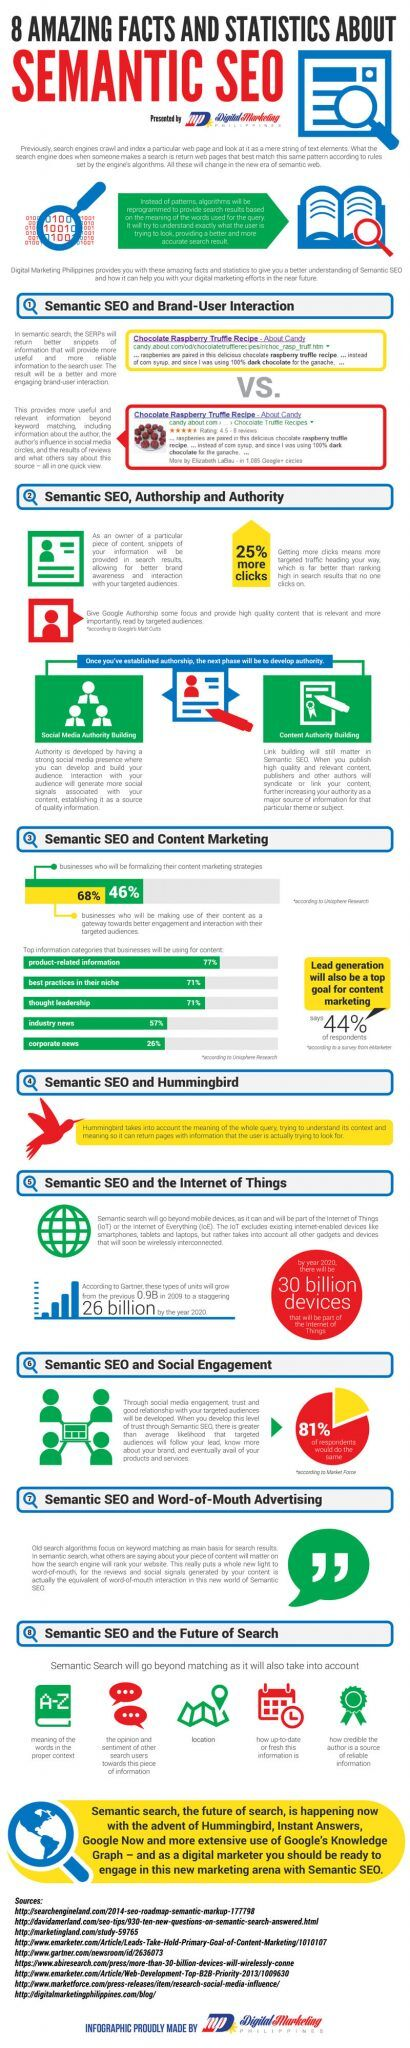 8-Amazing-Facts-and-Statistics-about-Semantic-SEO